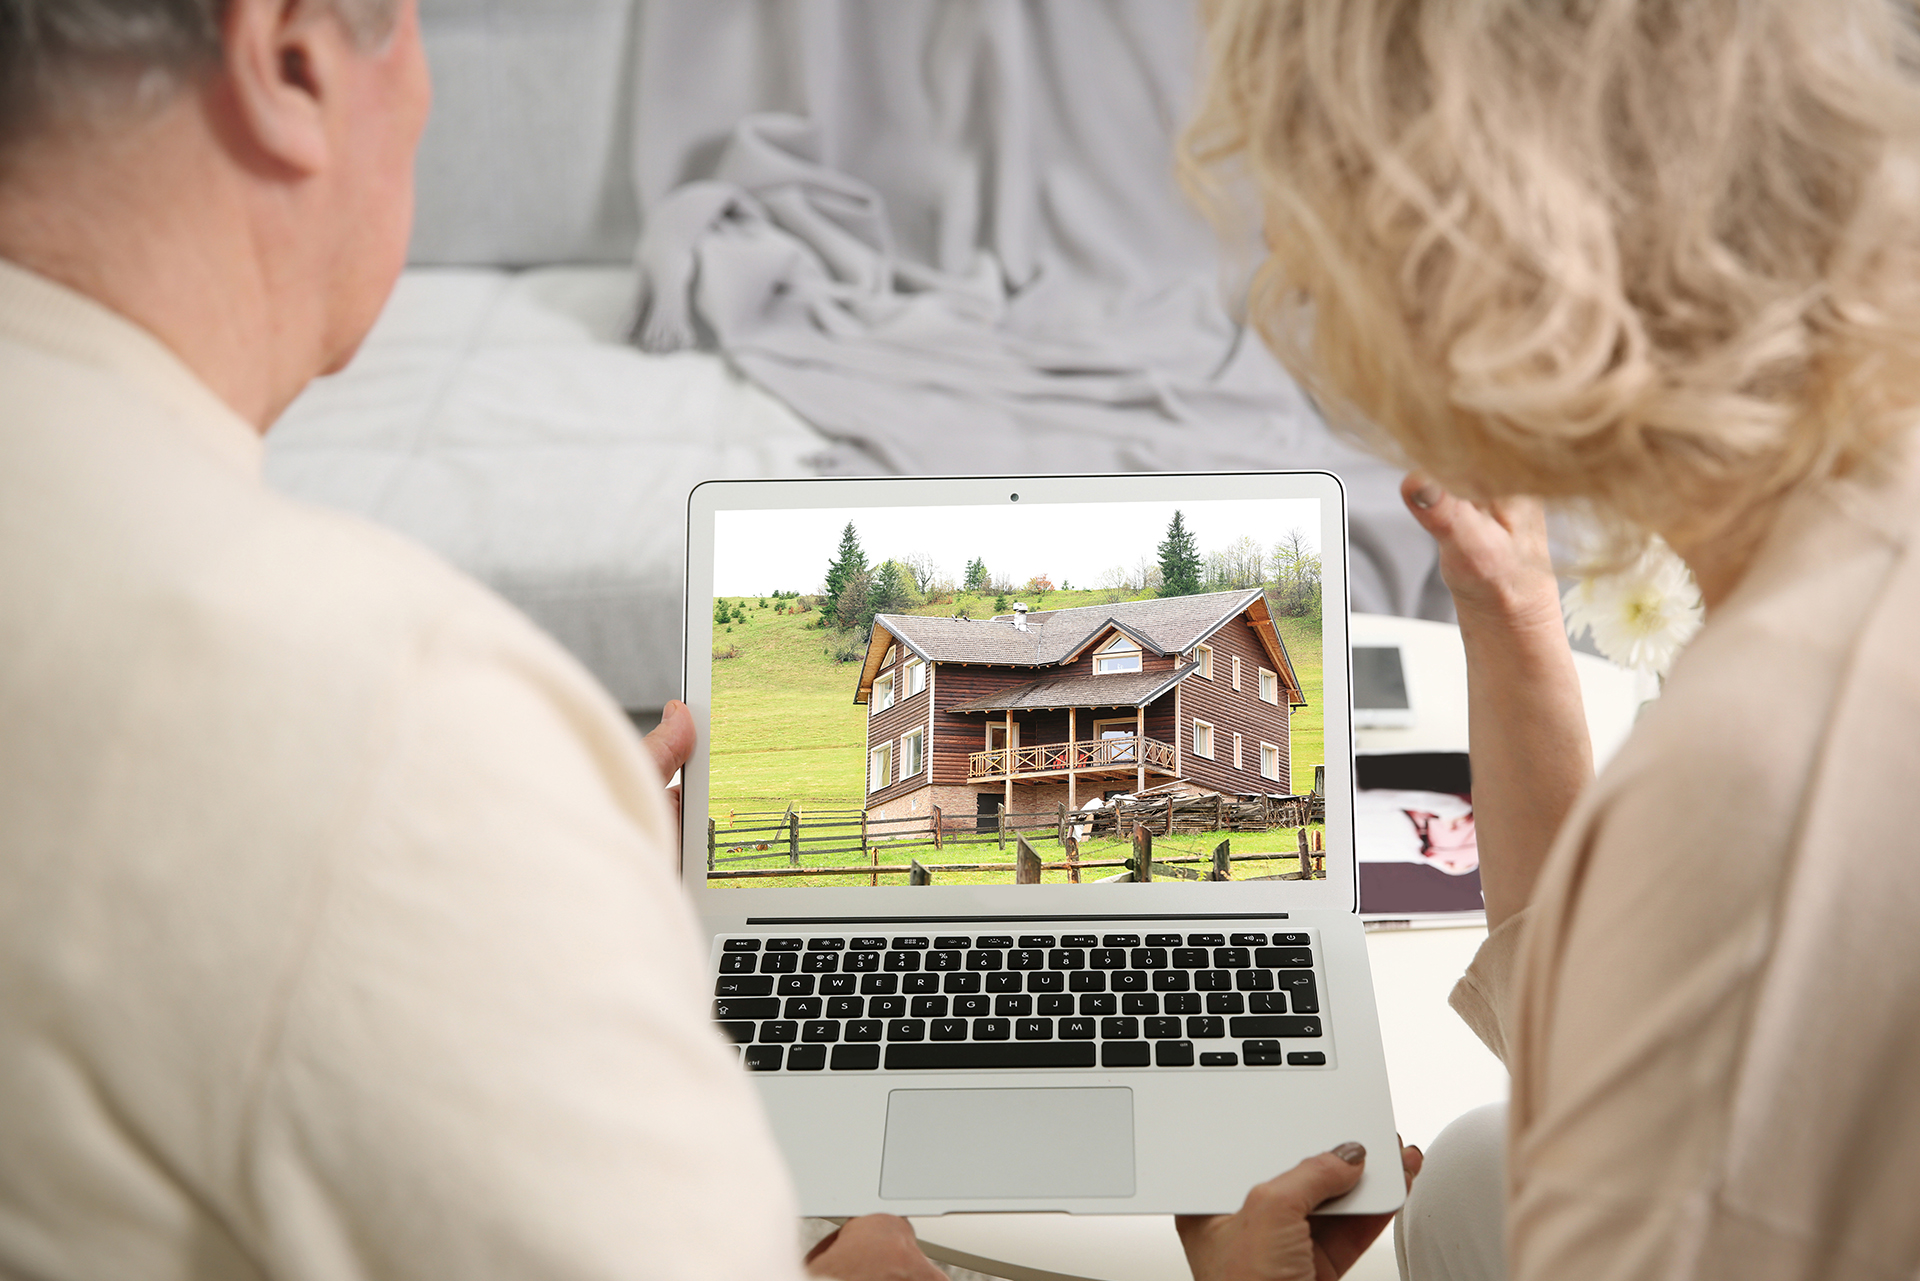 Online shopping concept. Senior couple looking for house on real estate market website